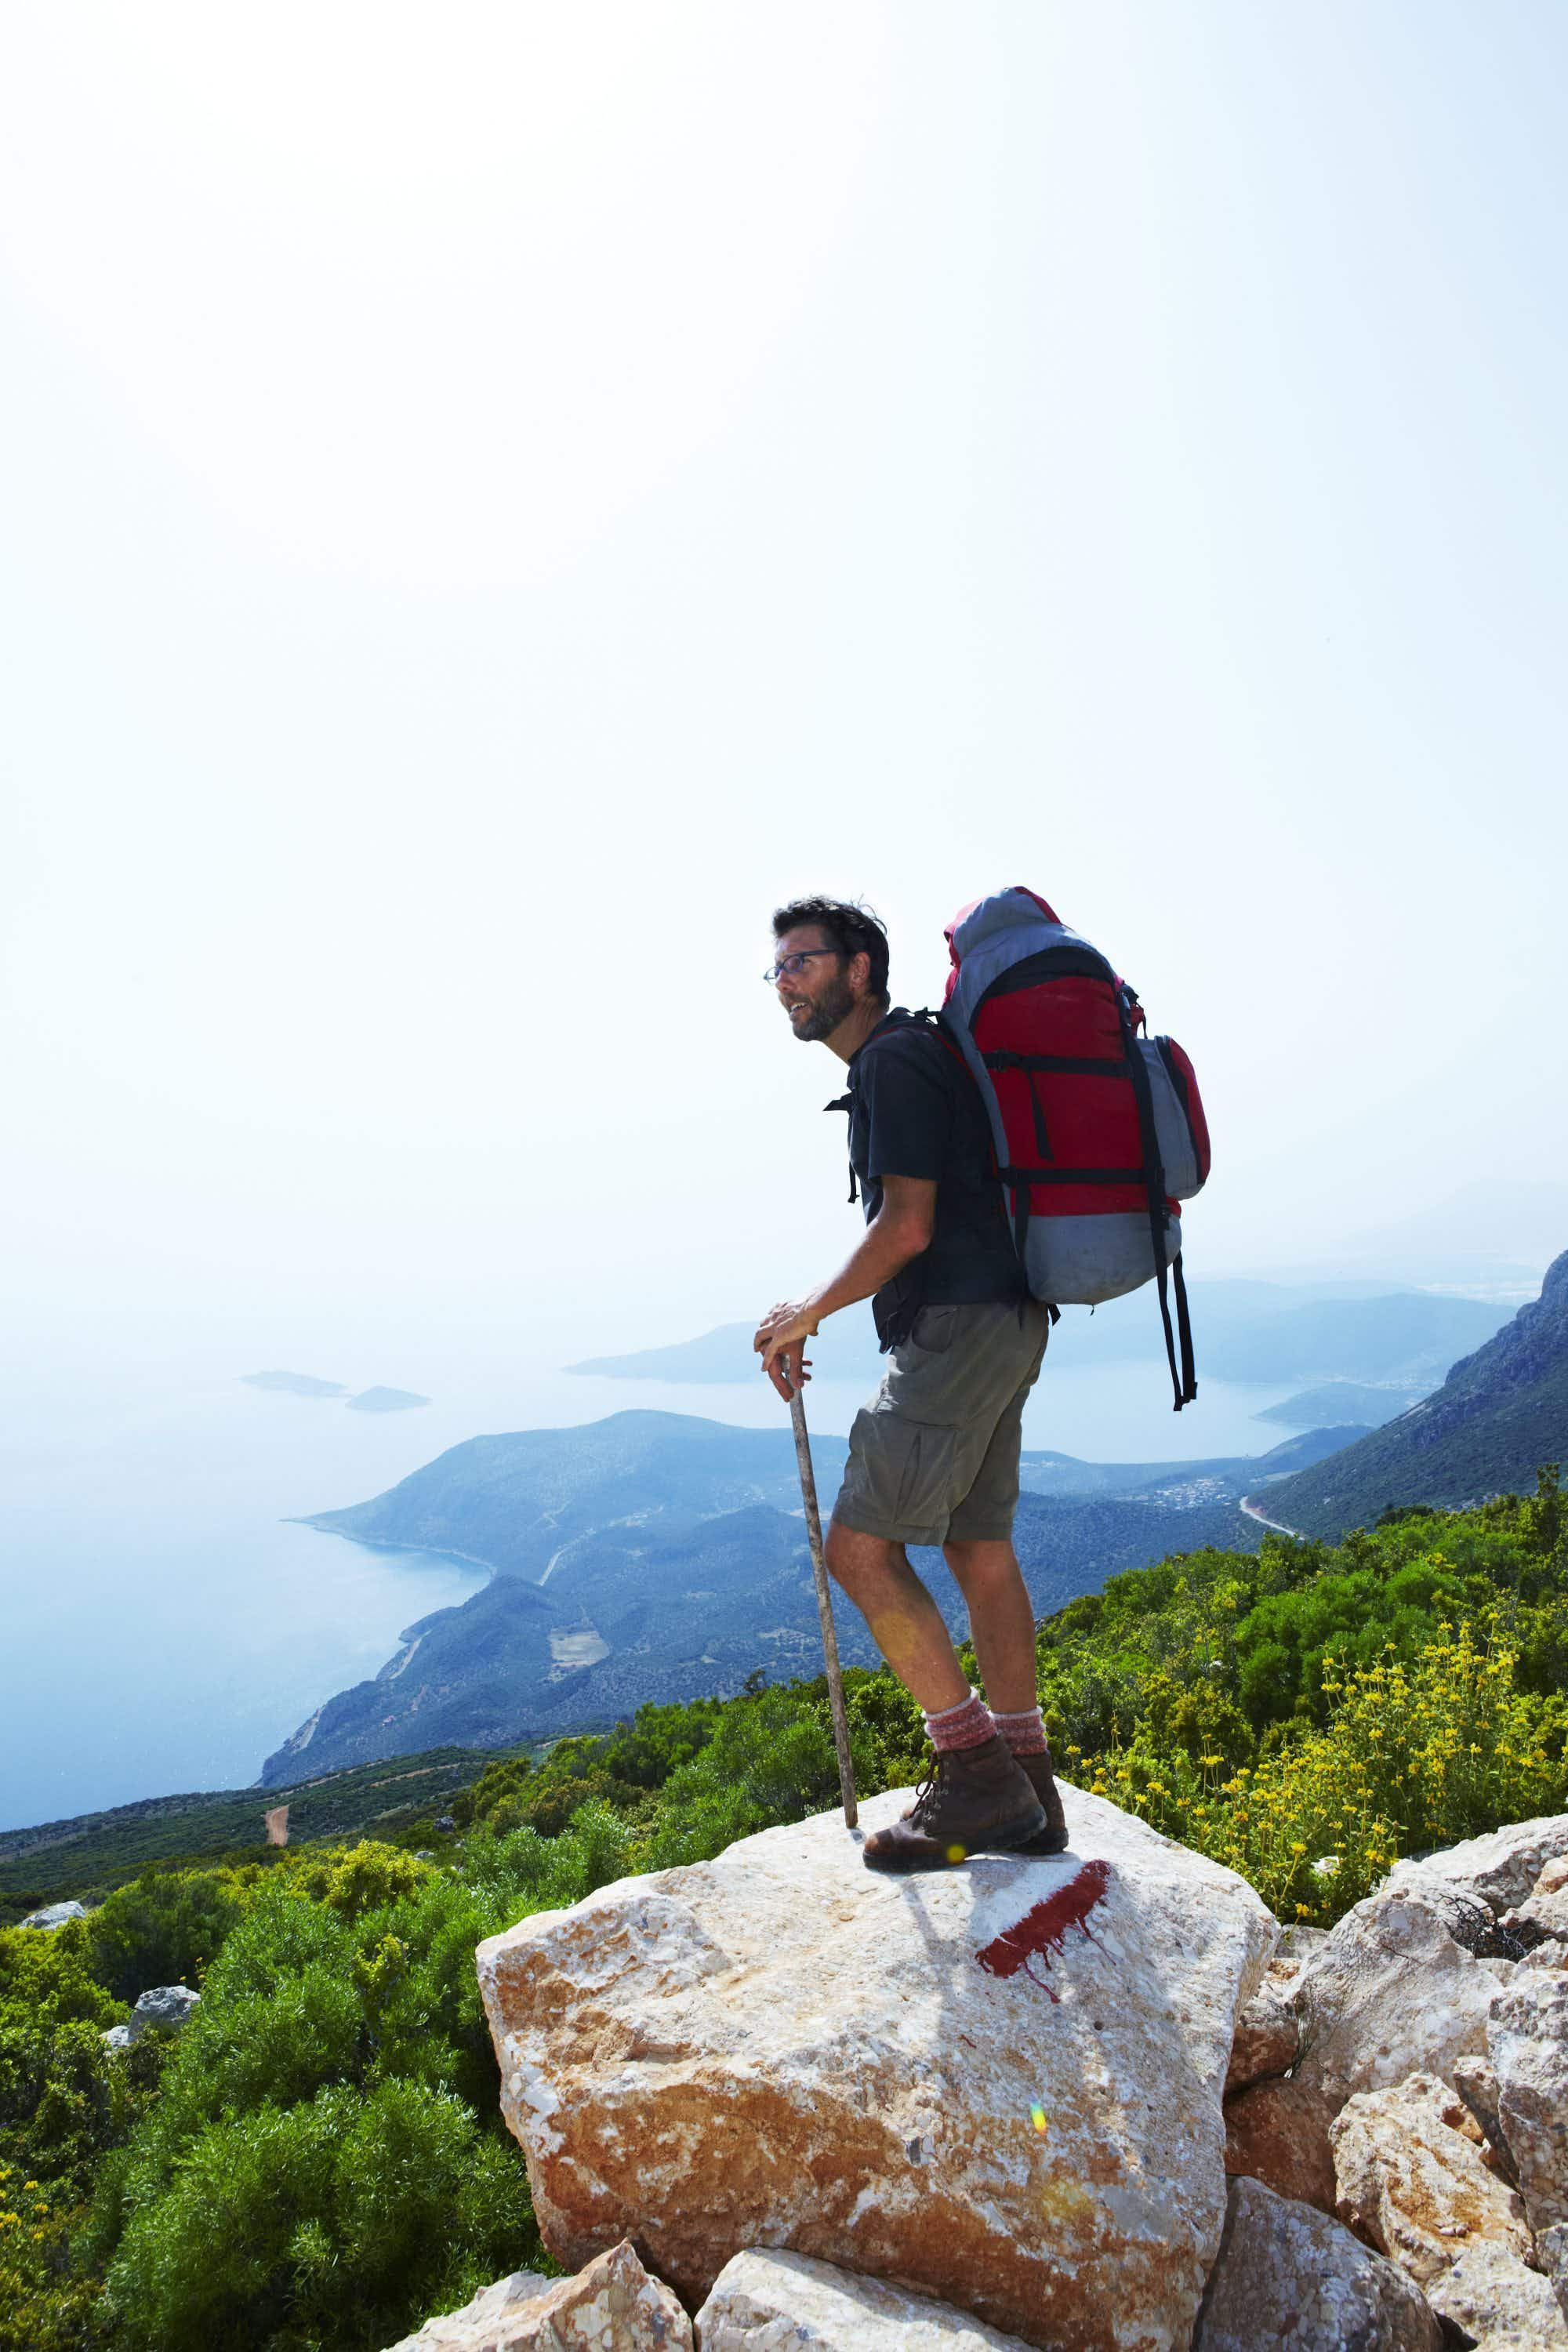 Turkish trekking trails expand to connect with pilgrimage footpaths in Europe